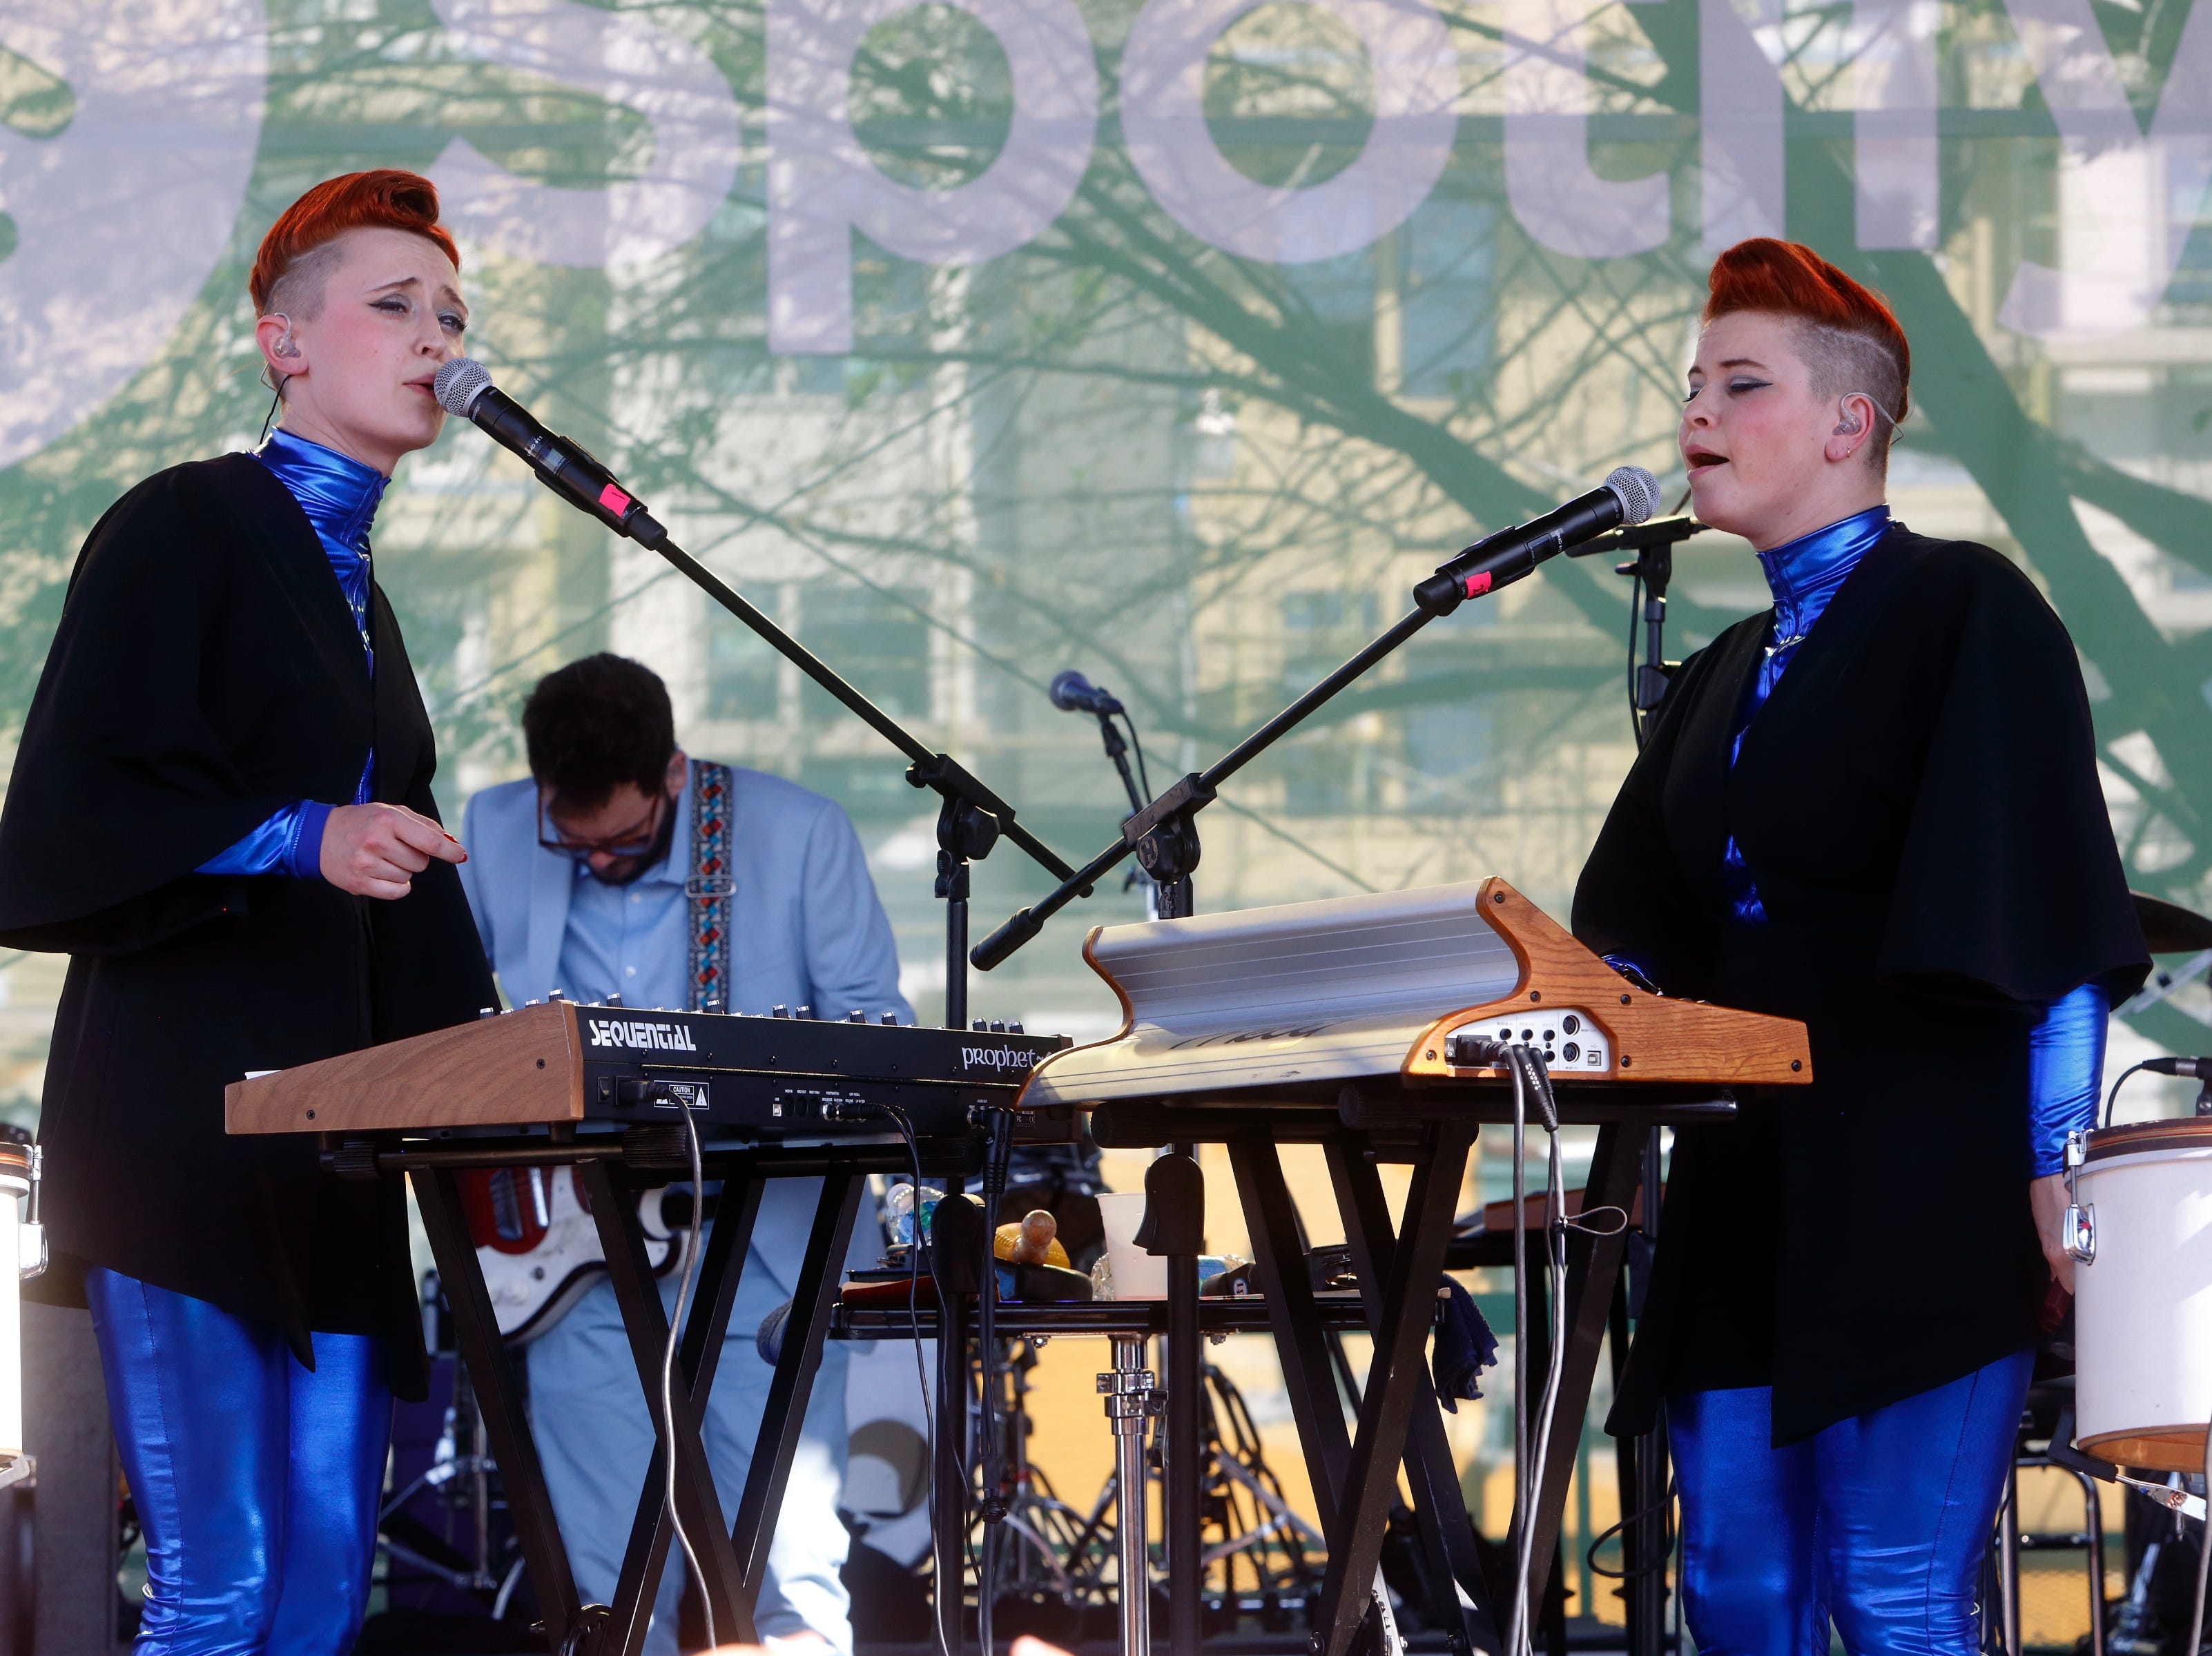 Jess Wolfe (left) and Holly Laessig of Lucius performs at the Spotify House at South by Southwest Music Festival on Monday, Mar. 14, 2016, in Austin, TX. (Photo by John Davisson/Invision/AP)